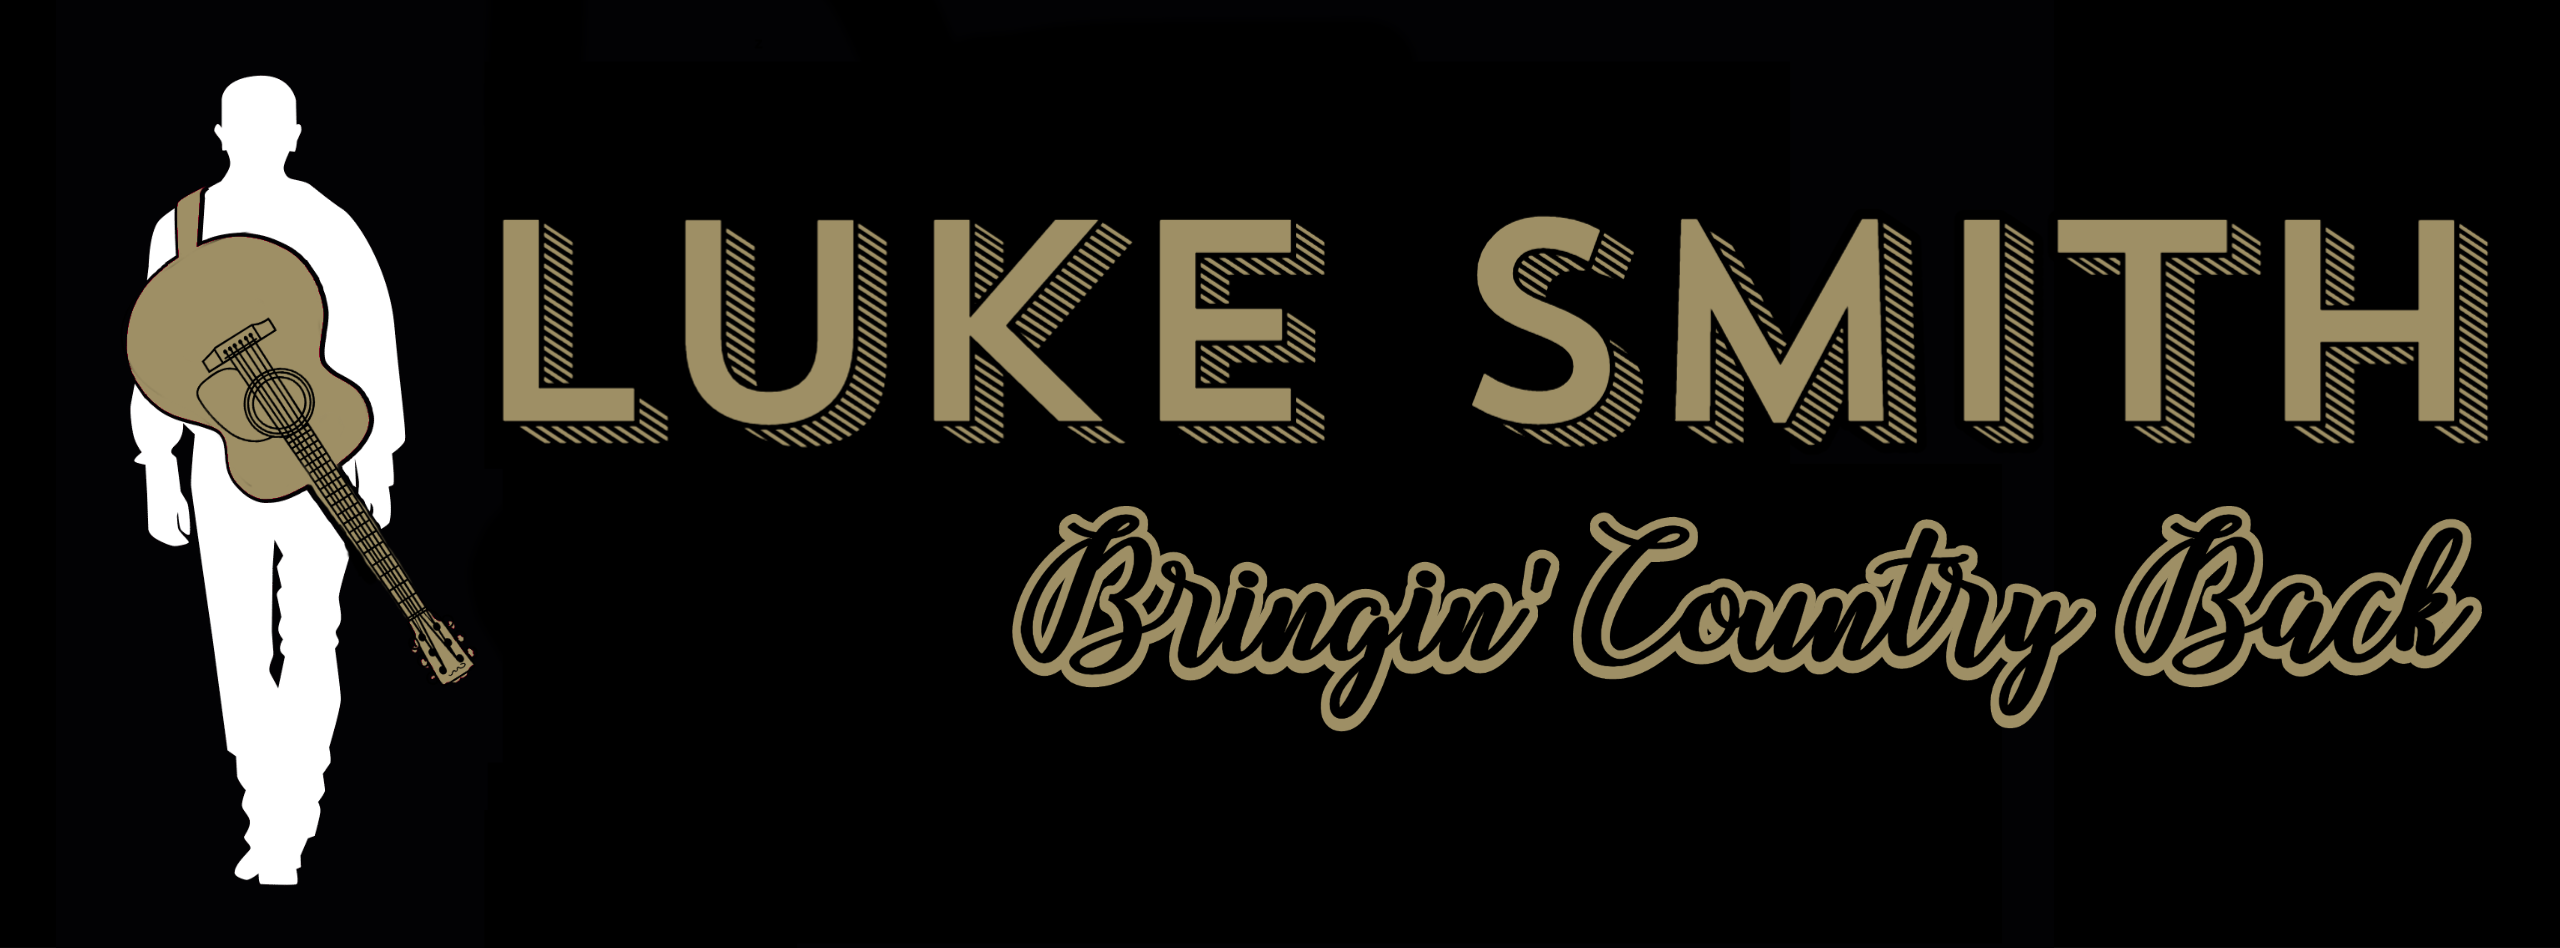 luke smith band